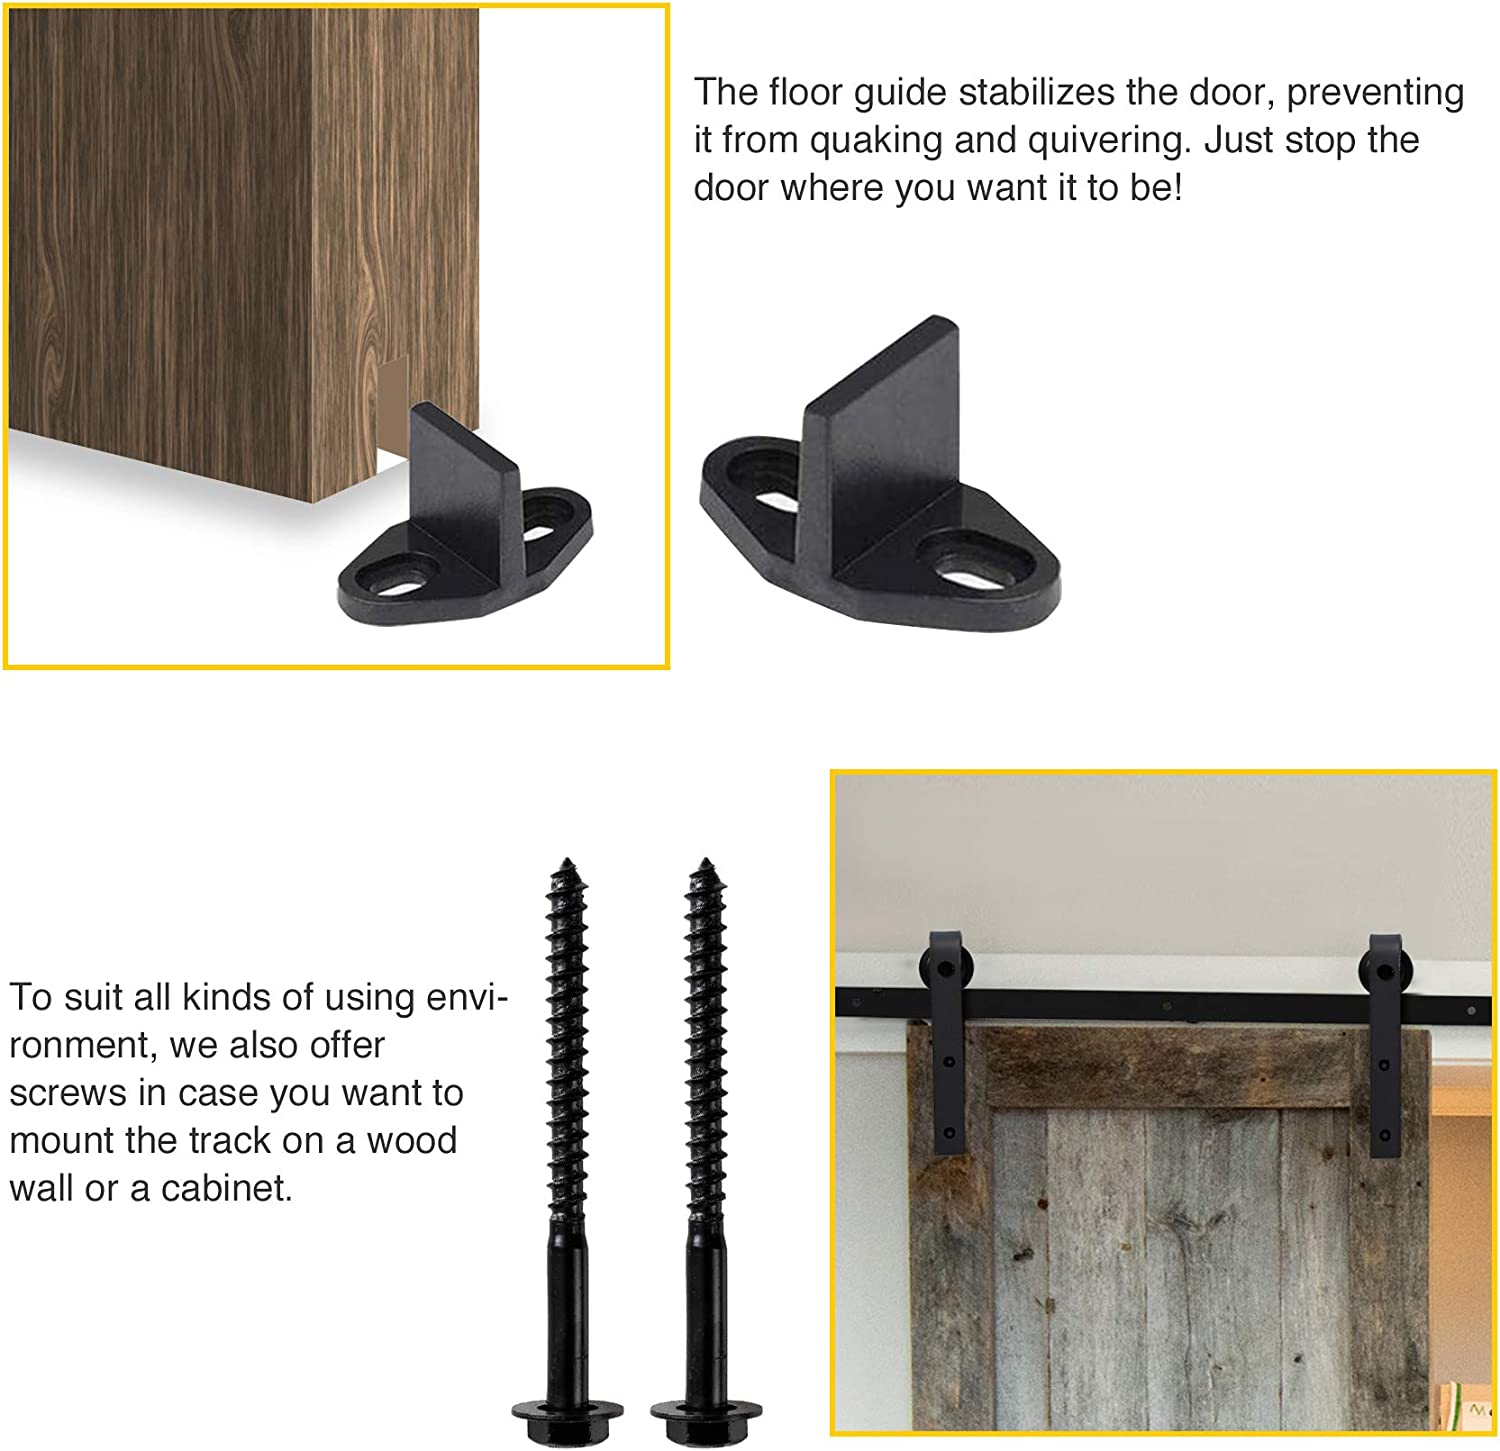 Carbon Steel Single Rail Single Door-6.6FT Whole Kit CO-Z 6.6FT Heavy-Duty Rail for Sliding Barn Door Straight Shape Hangers for Super Smooth and Quiet Opening Easy to Install